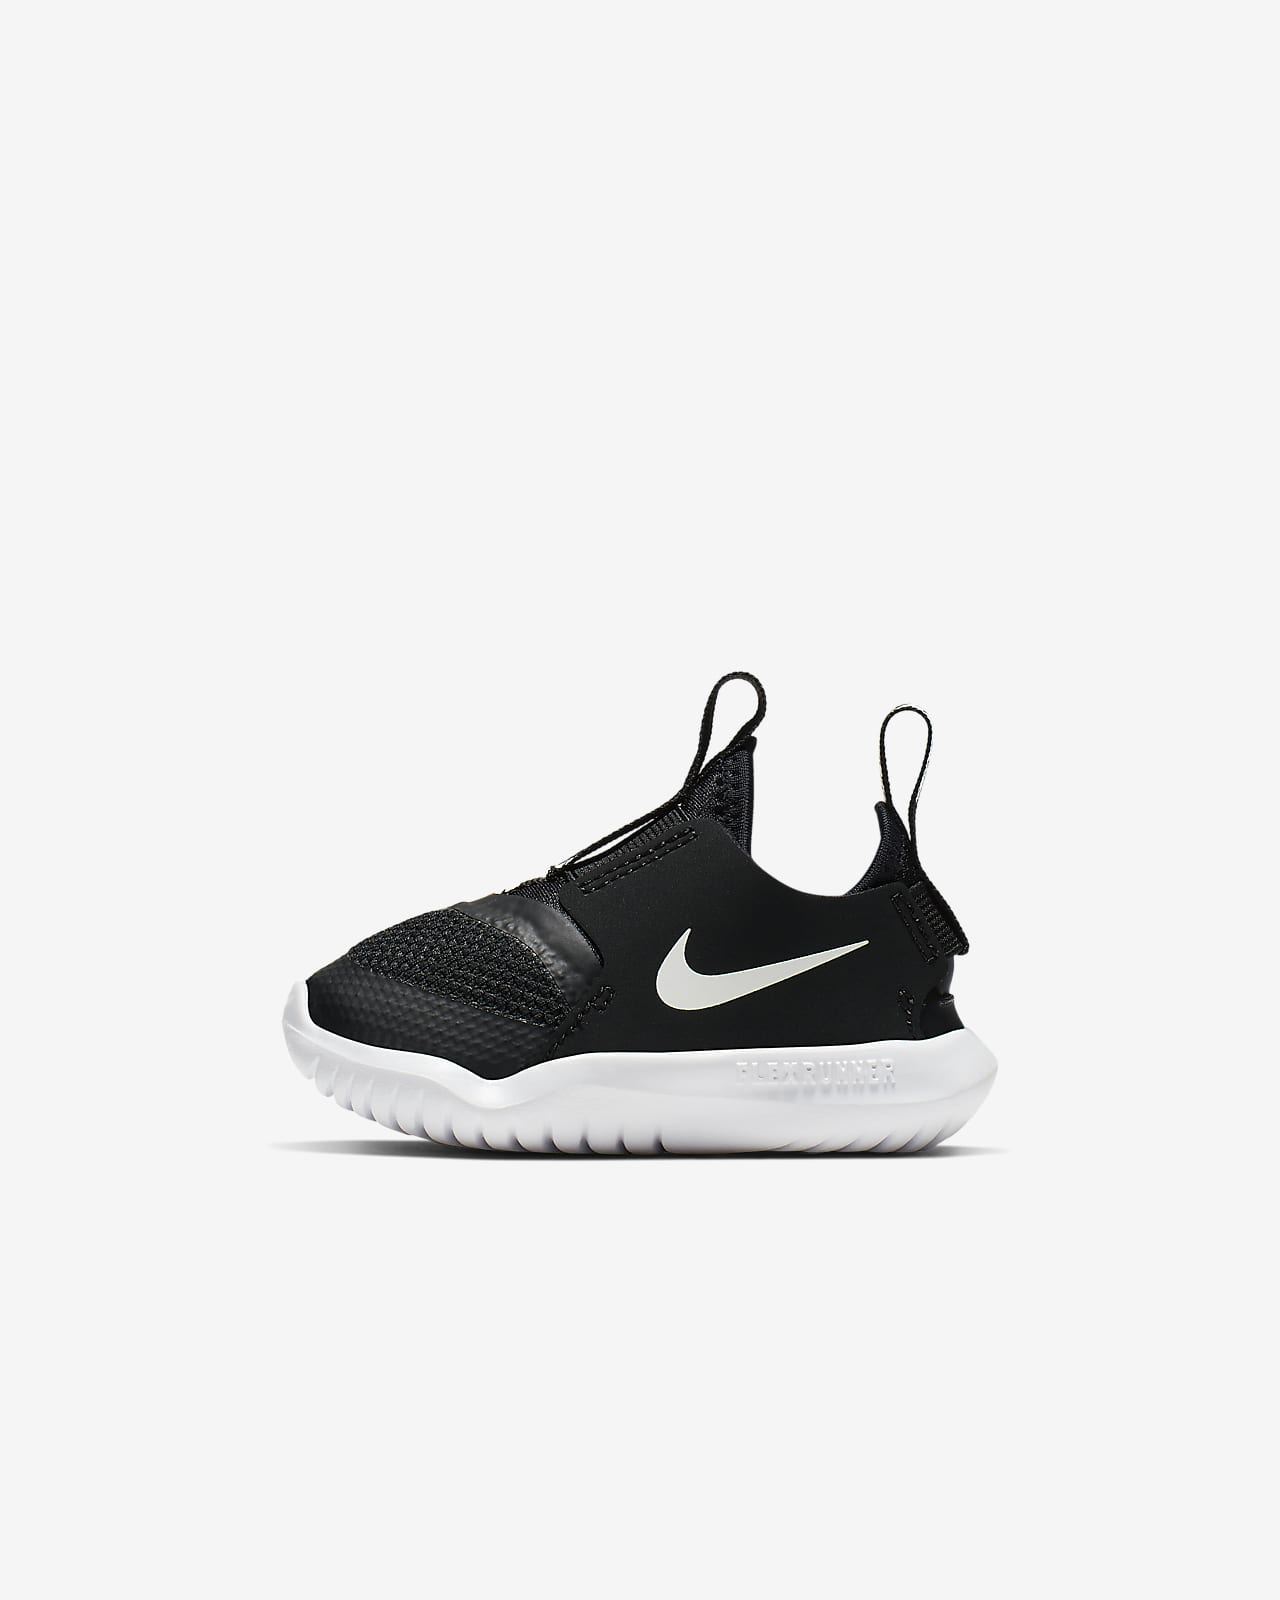 Nike Flex Runner Baby and Toddler Shoe